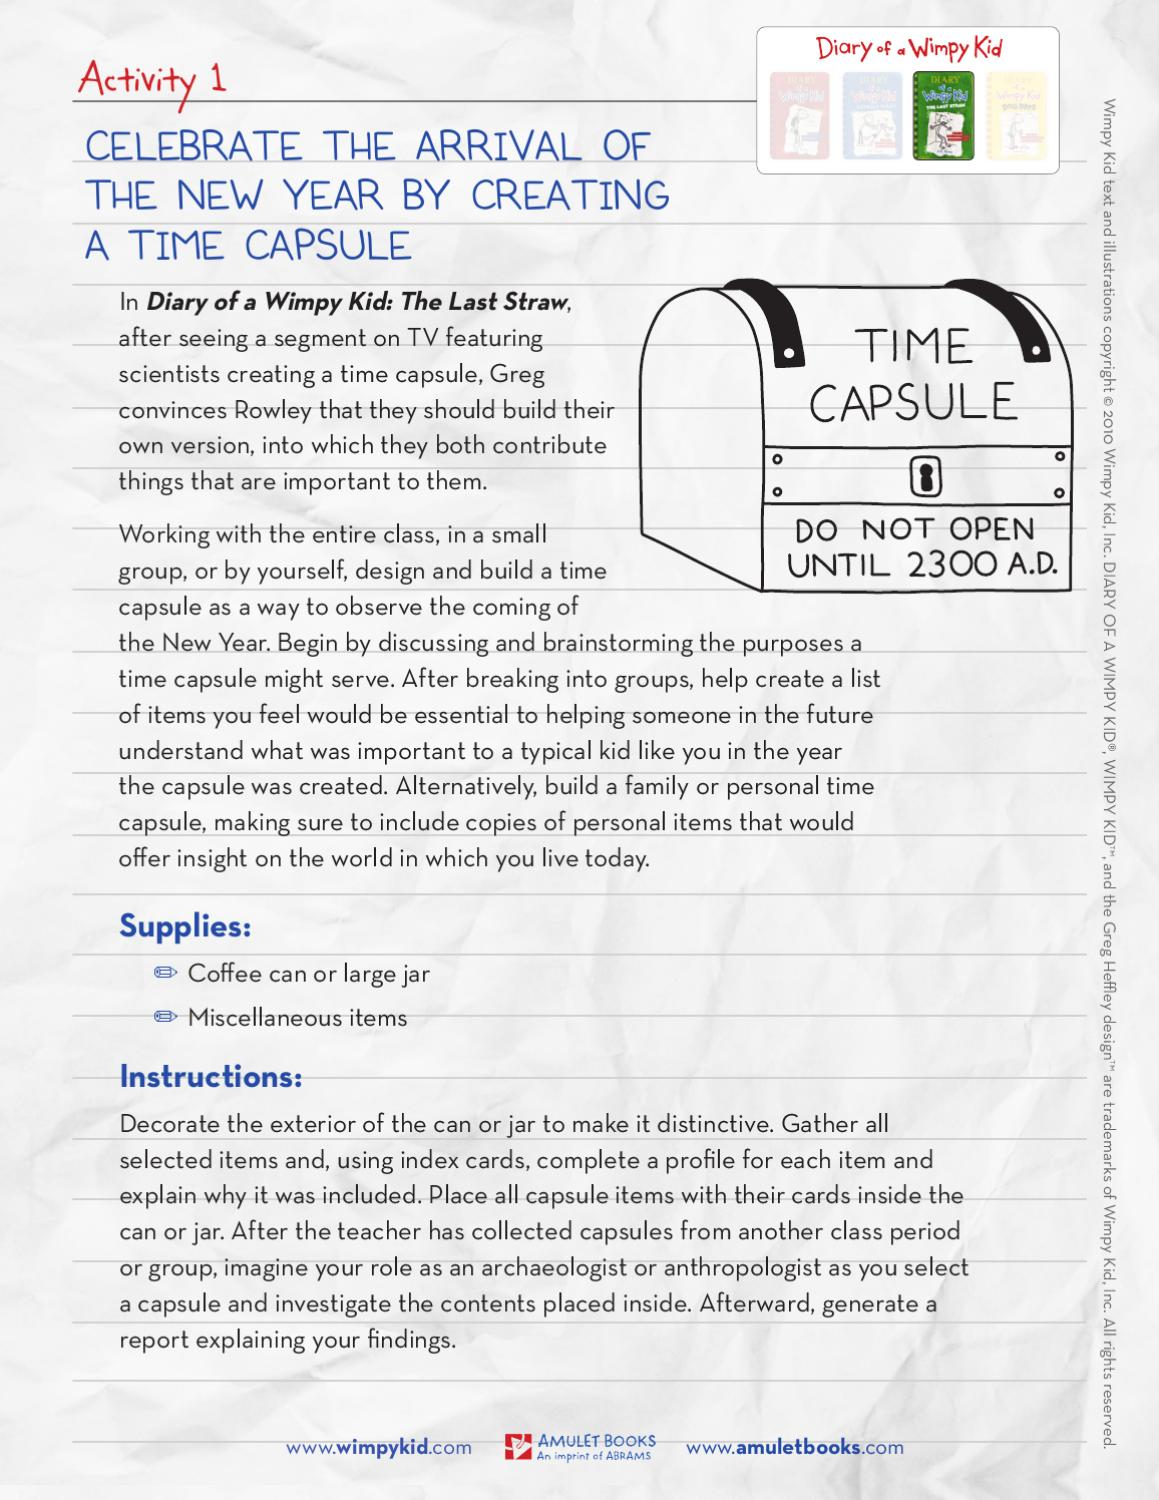 Diary Of A Wimpy Kid Throughout The Year Activities For The Classroom By Abrams Issuu